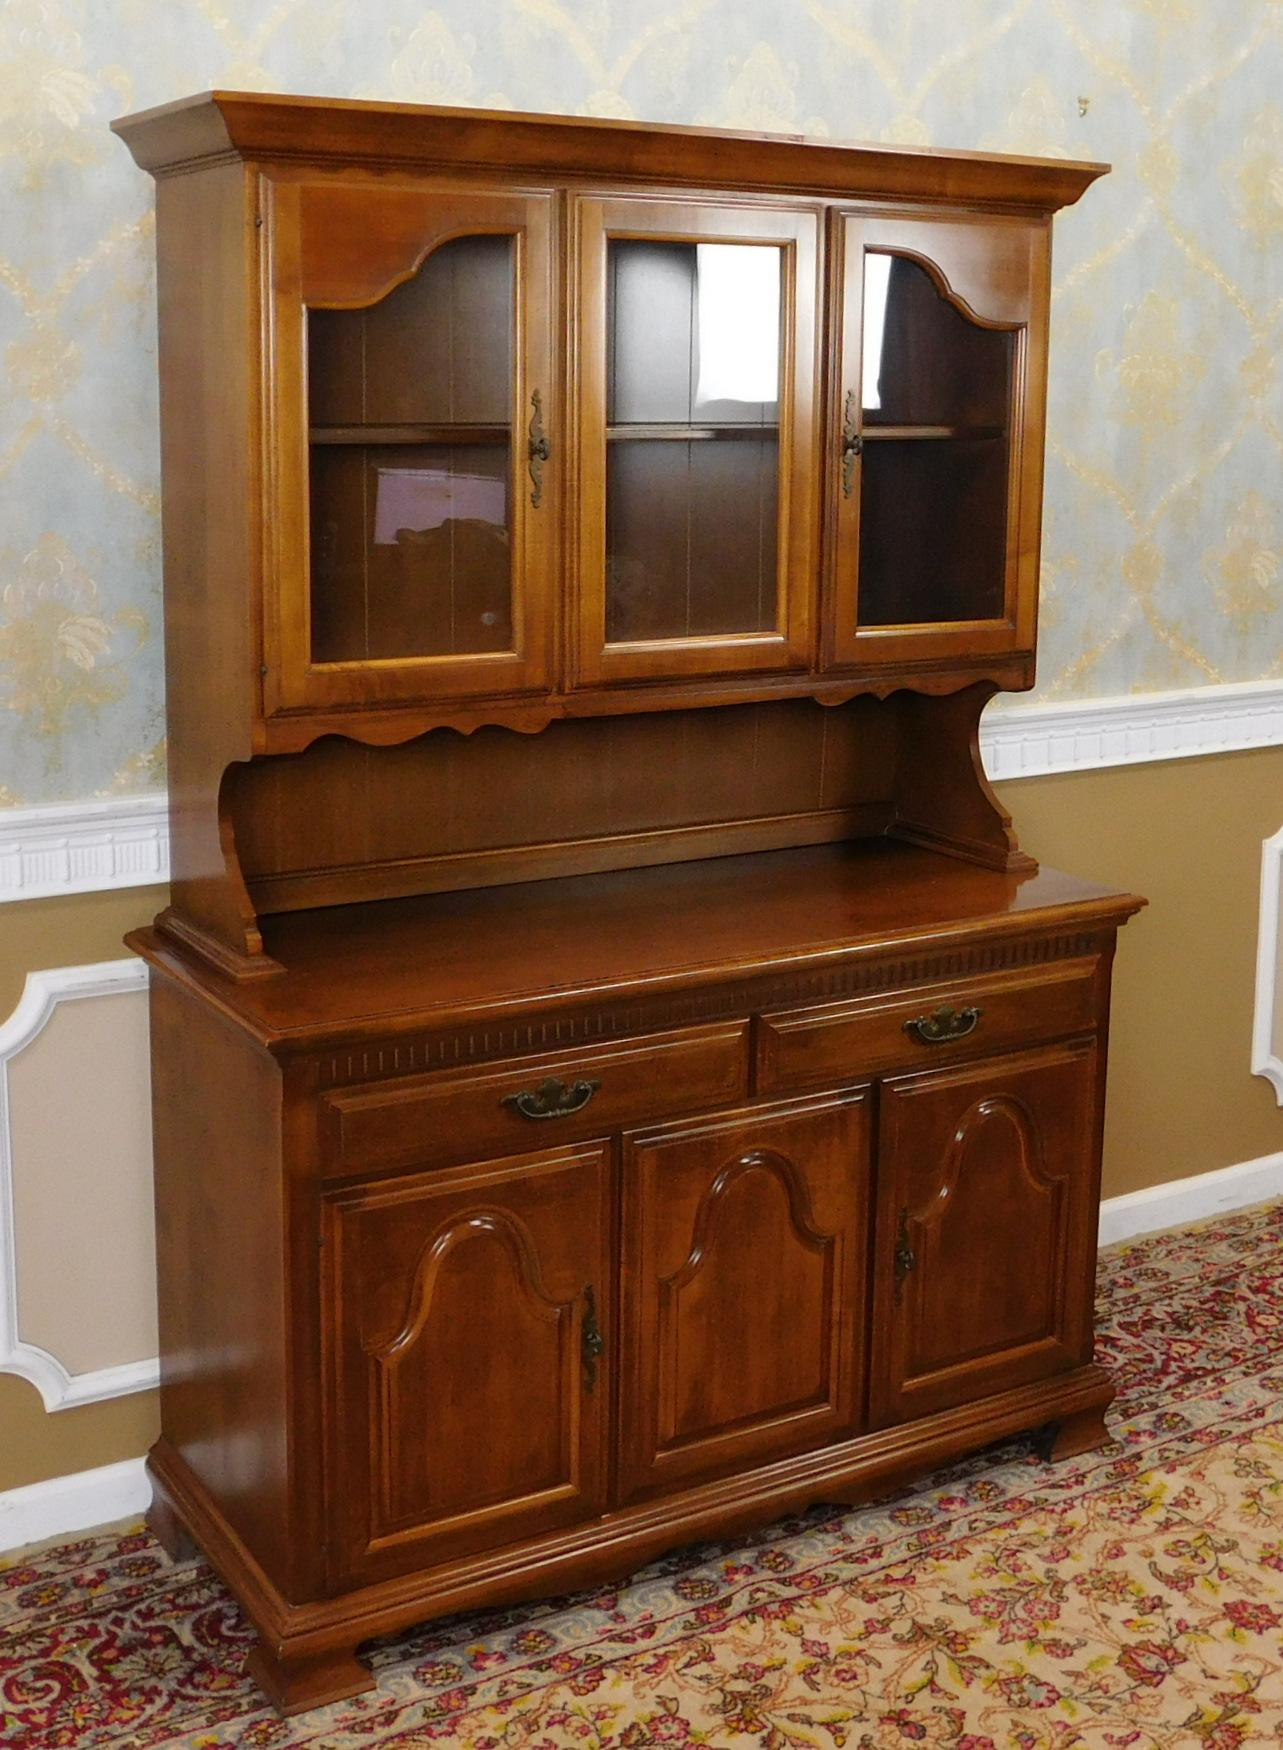 1980s Solid Maple Dining Room Kitchen China Cabinet Hutch   Image 3 Of 10